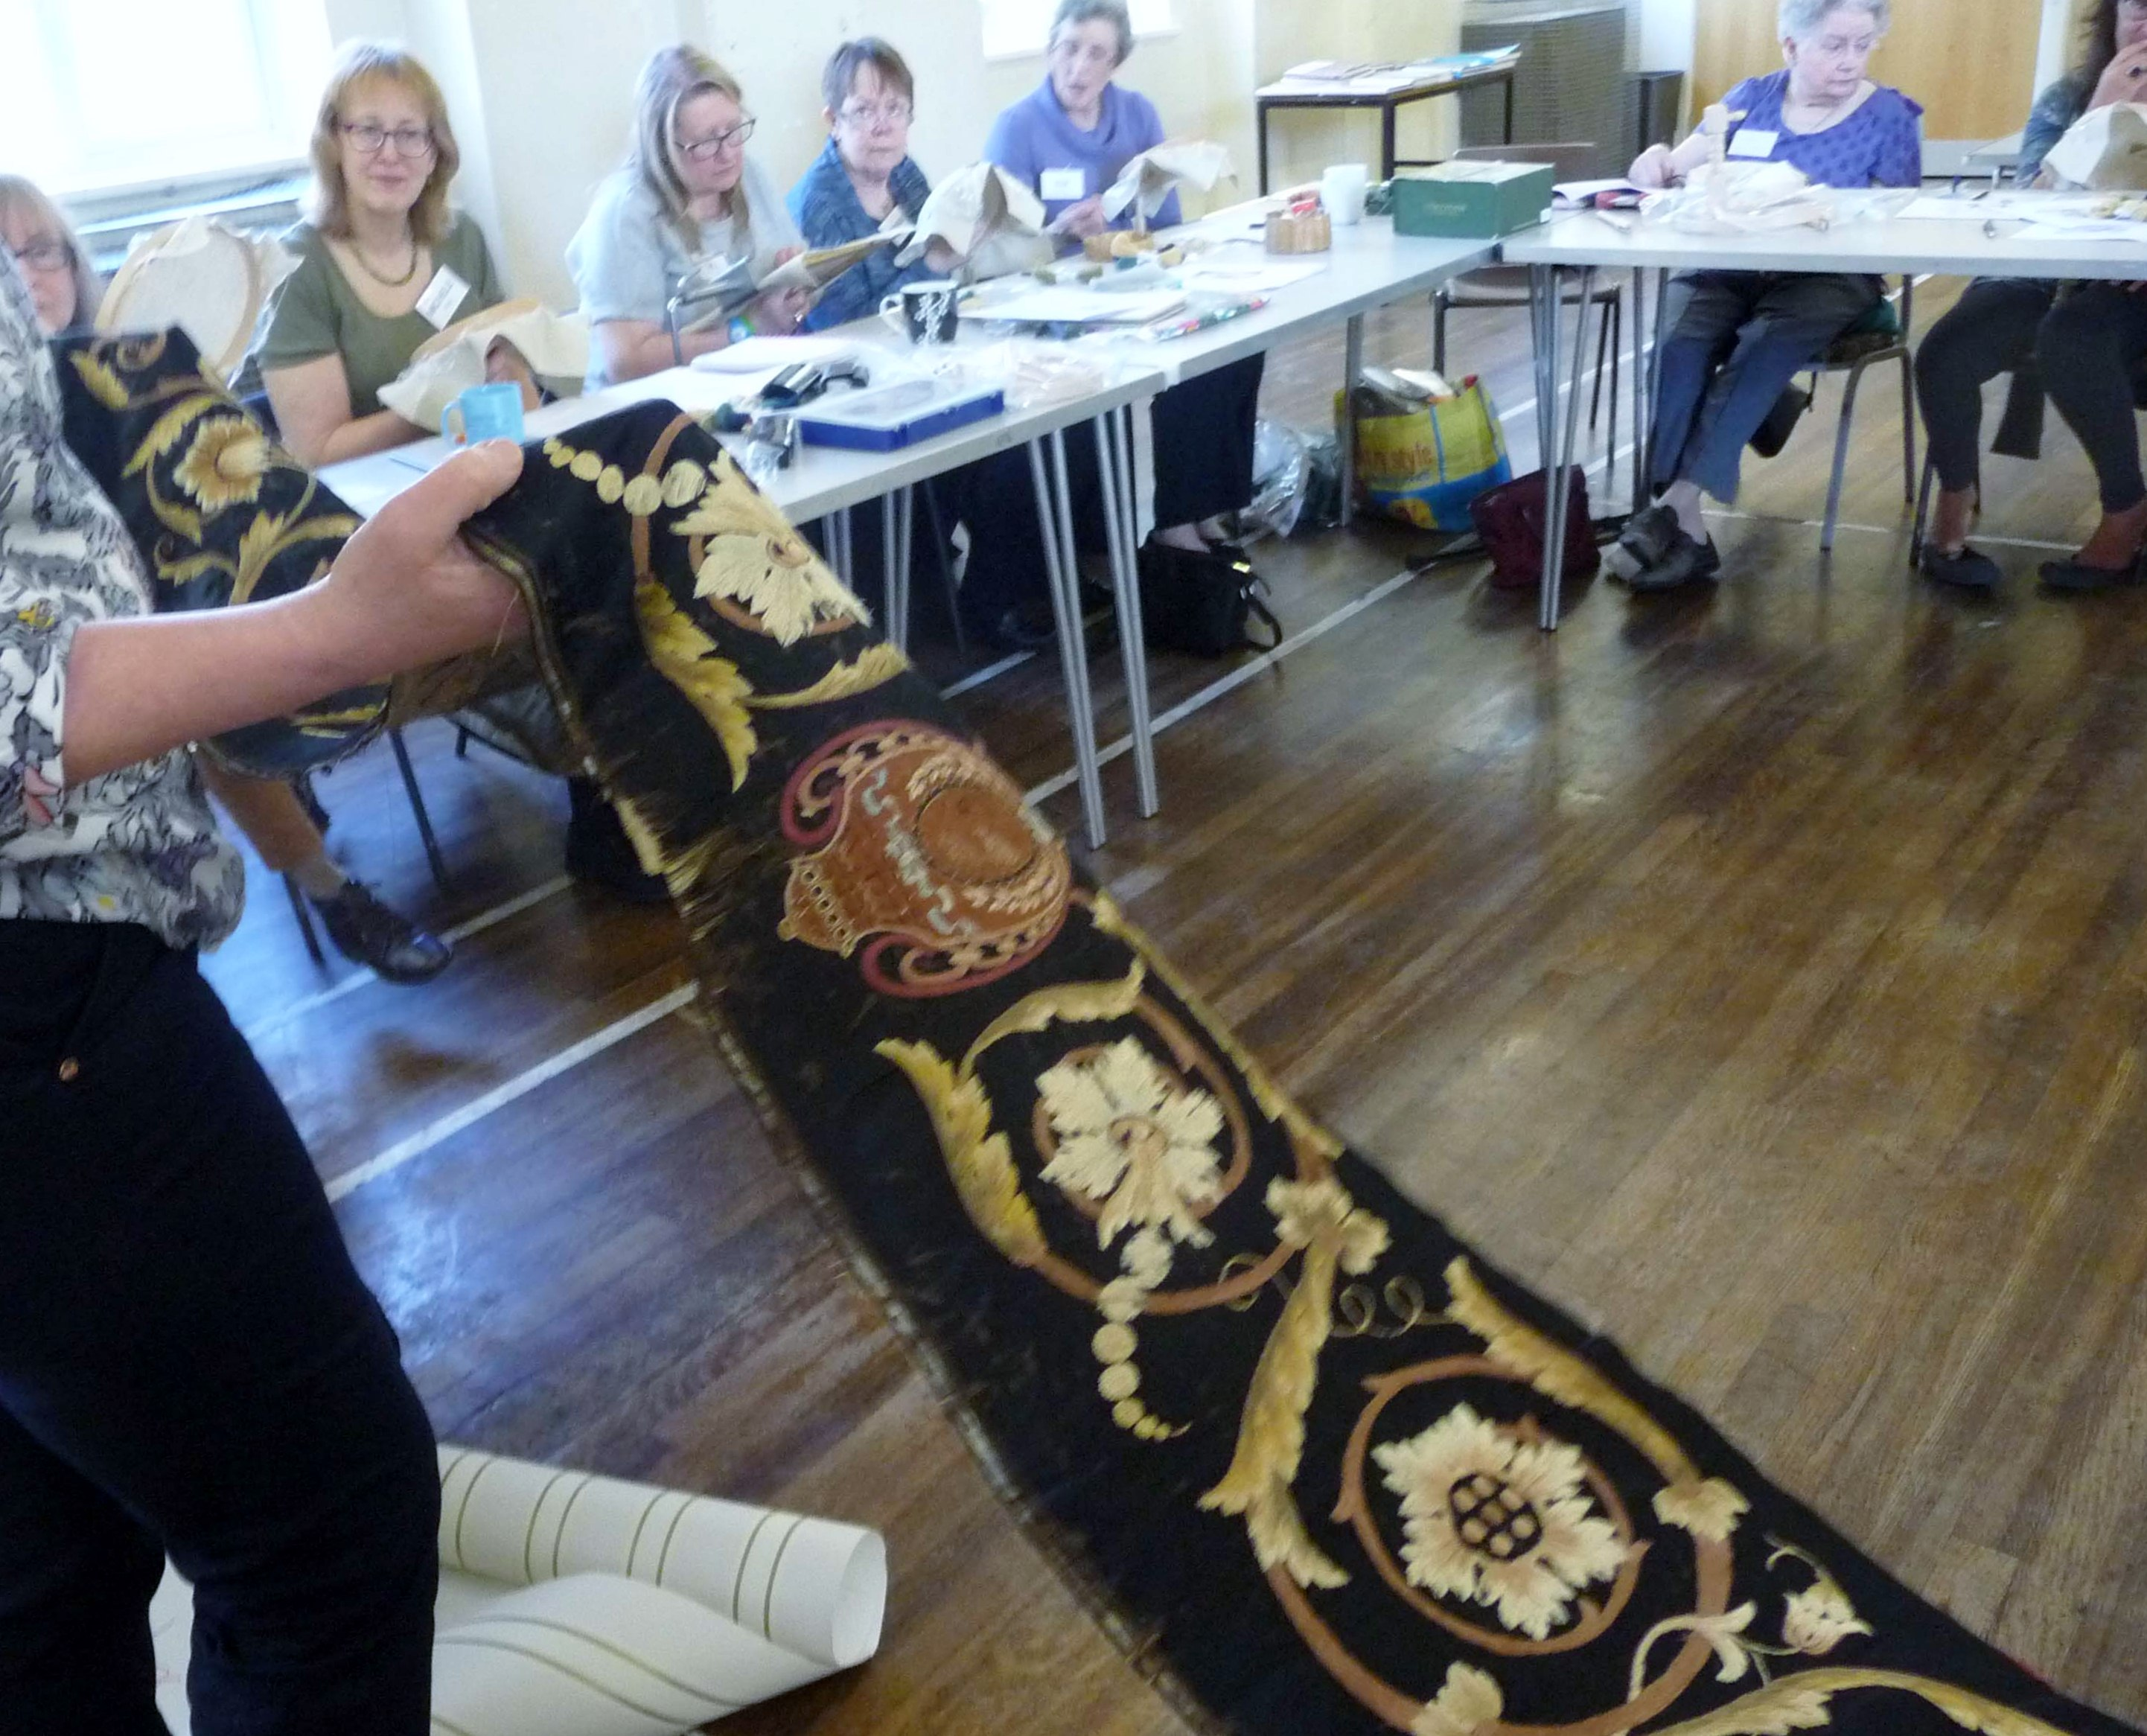 antique crewelwork frieze at Philipa Turnbull workshop